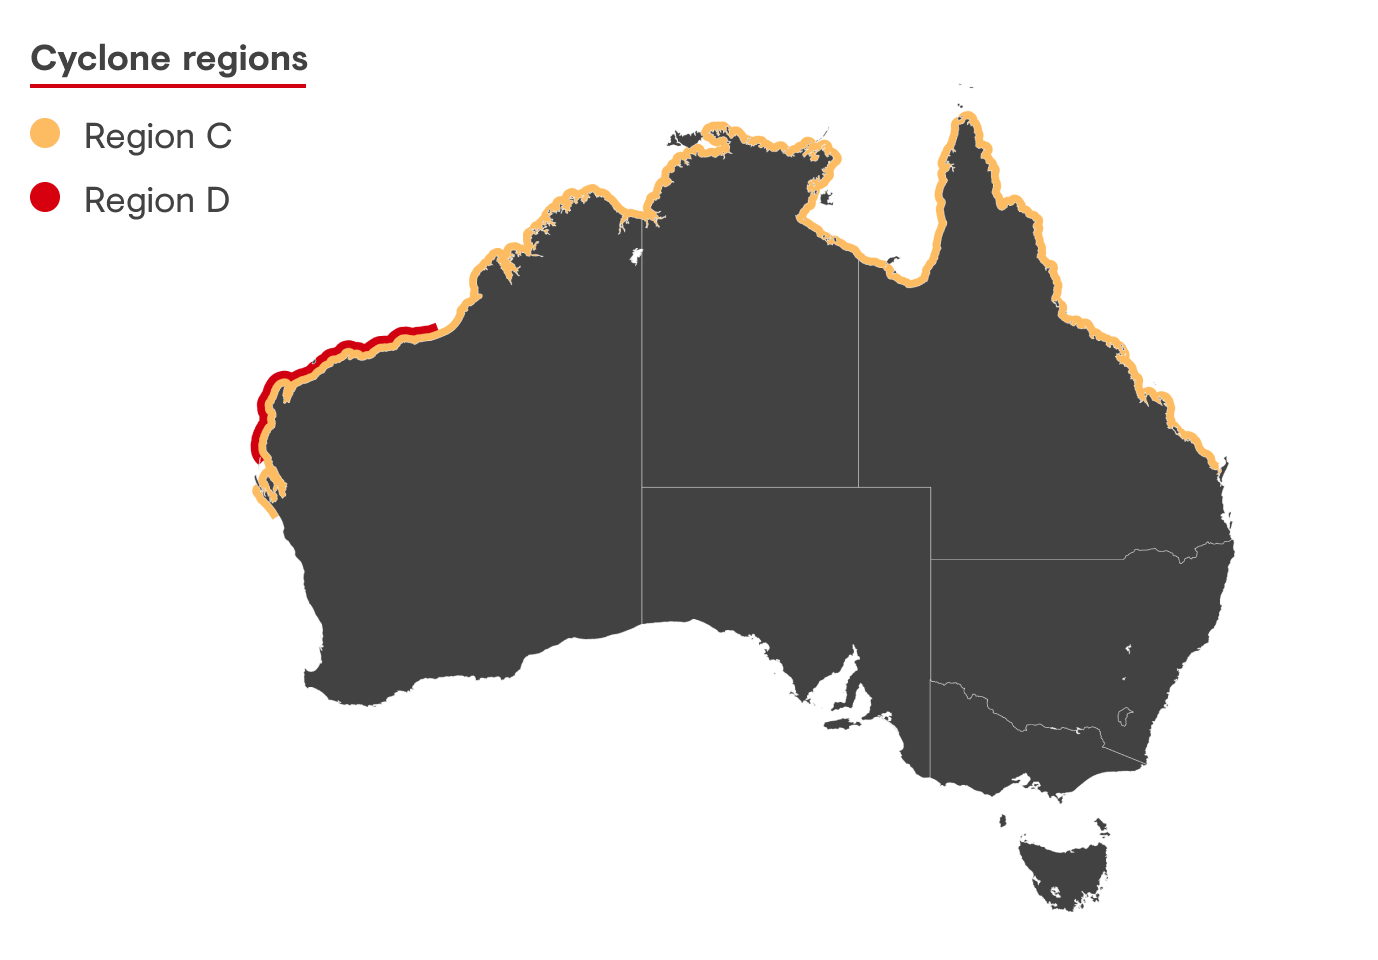 diagram demonstrating the different cyclone regions on Australian coast lines